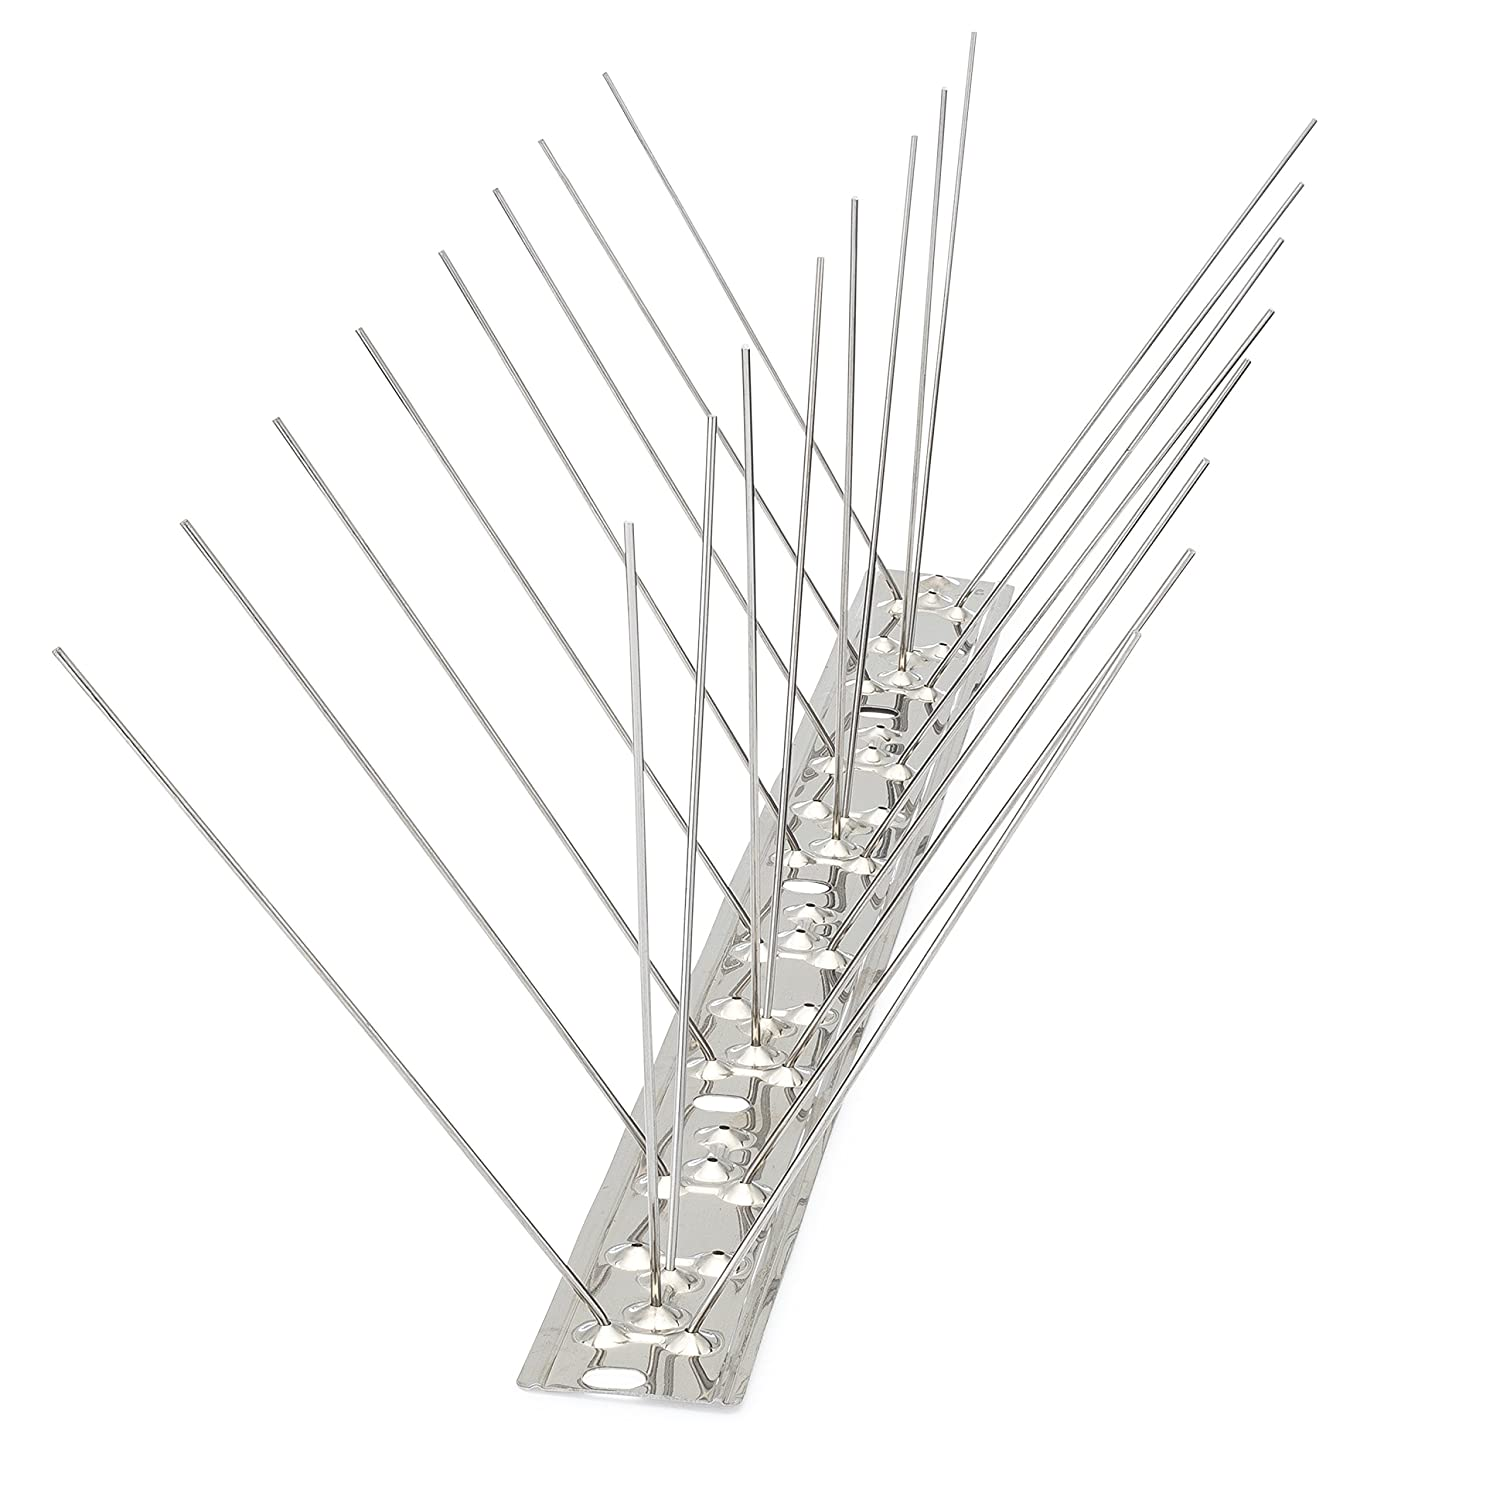 Bird Blinder Stainless Steel Bird Spikes for Pigeons and Other Small Birds – Industrial Design Contains no Plastic - (11 Foot Coverage)